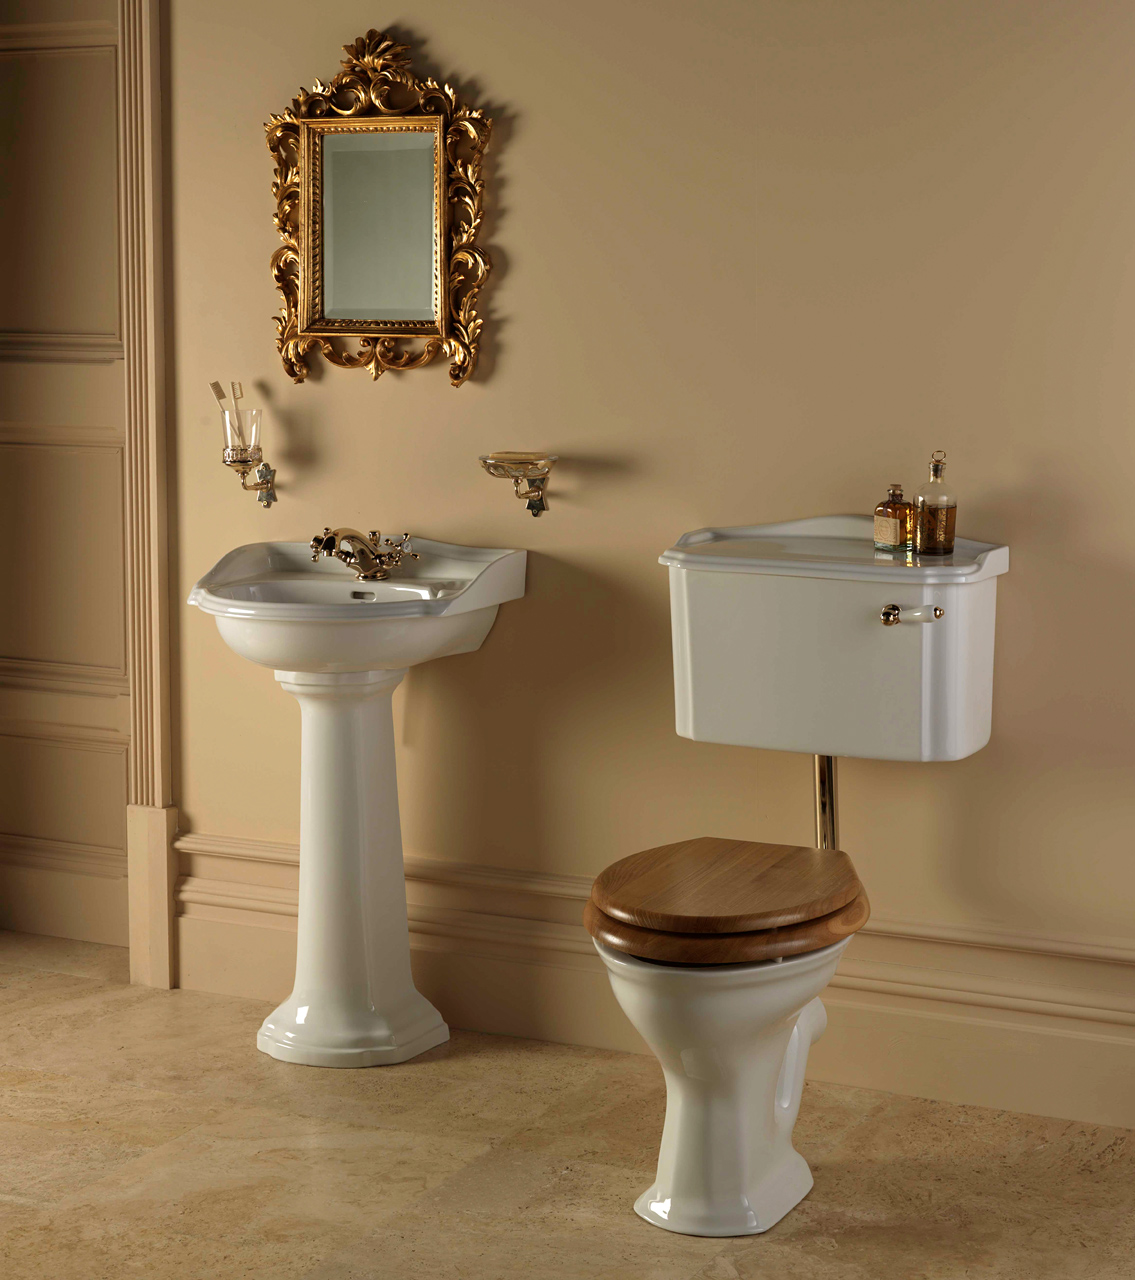 Classic Bathrooms: Imperial Bathrooms - Heyford-Cloakroom